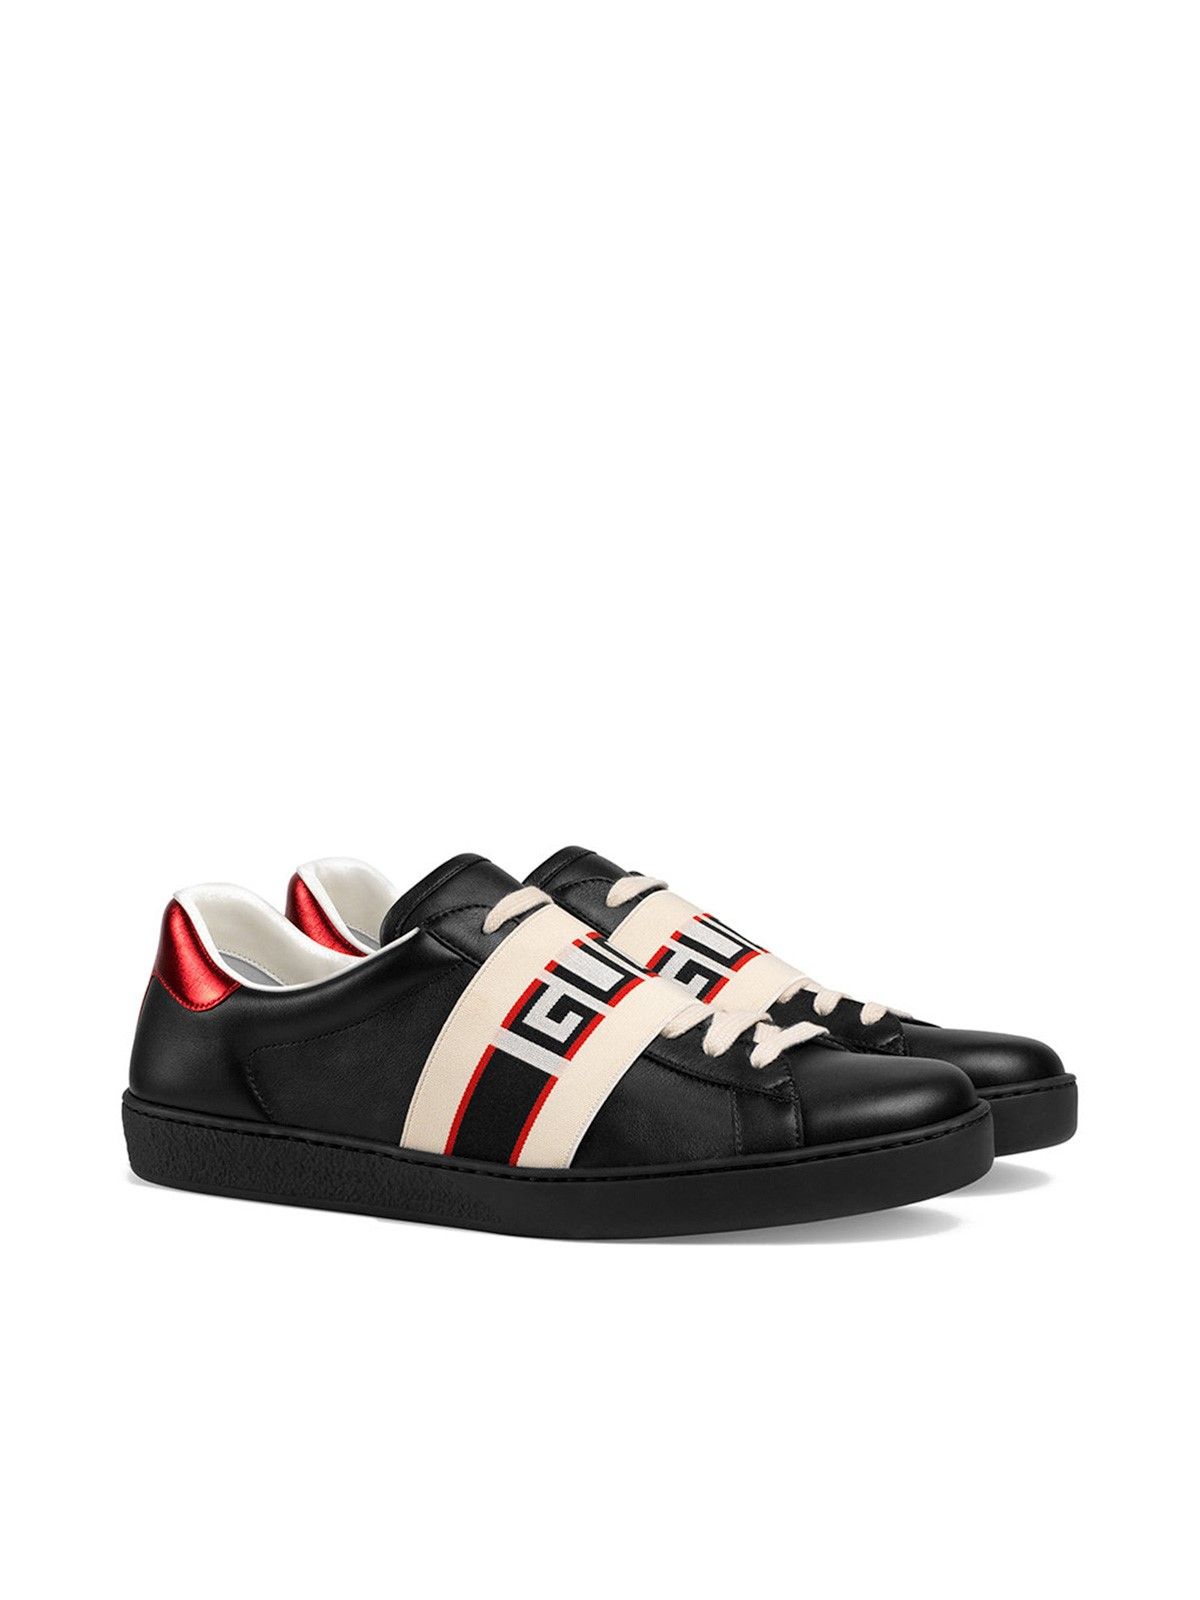 312a289a8d6 gucci LOGO ACE SNEAKERS available on montiboutique.com - 22781